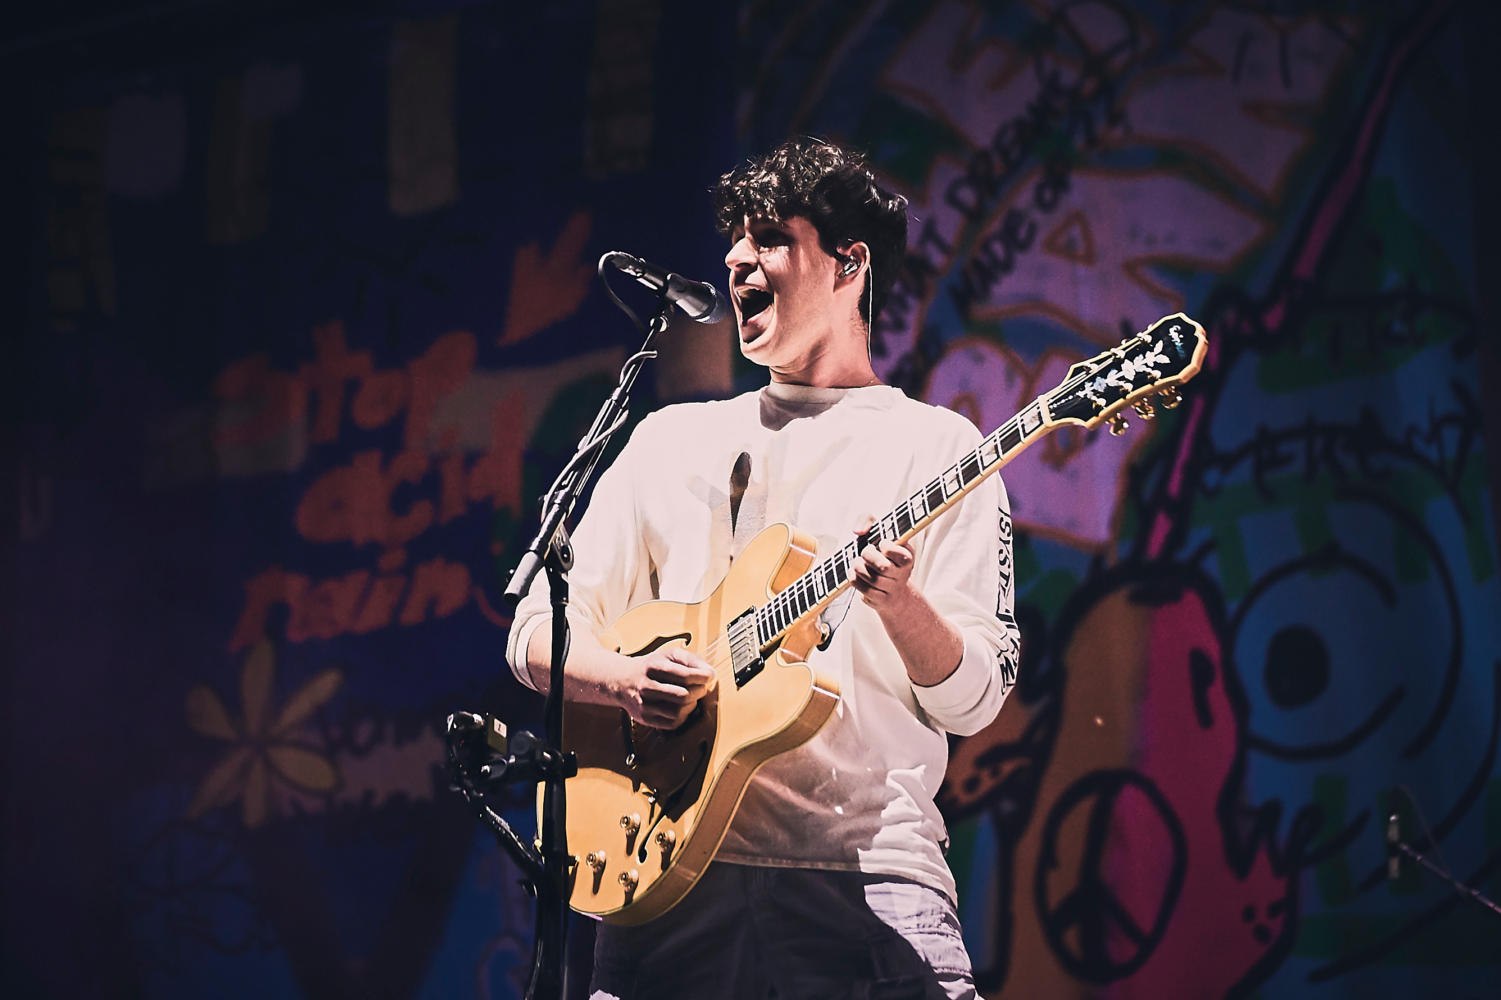 Vampire Weekend at Lollapalooza music festival photographed by Koury Angelo in Chicago, IL, USA on 04 August, 2018 for Rolling Stone.